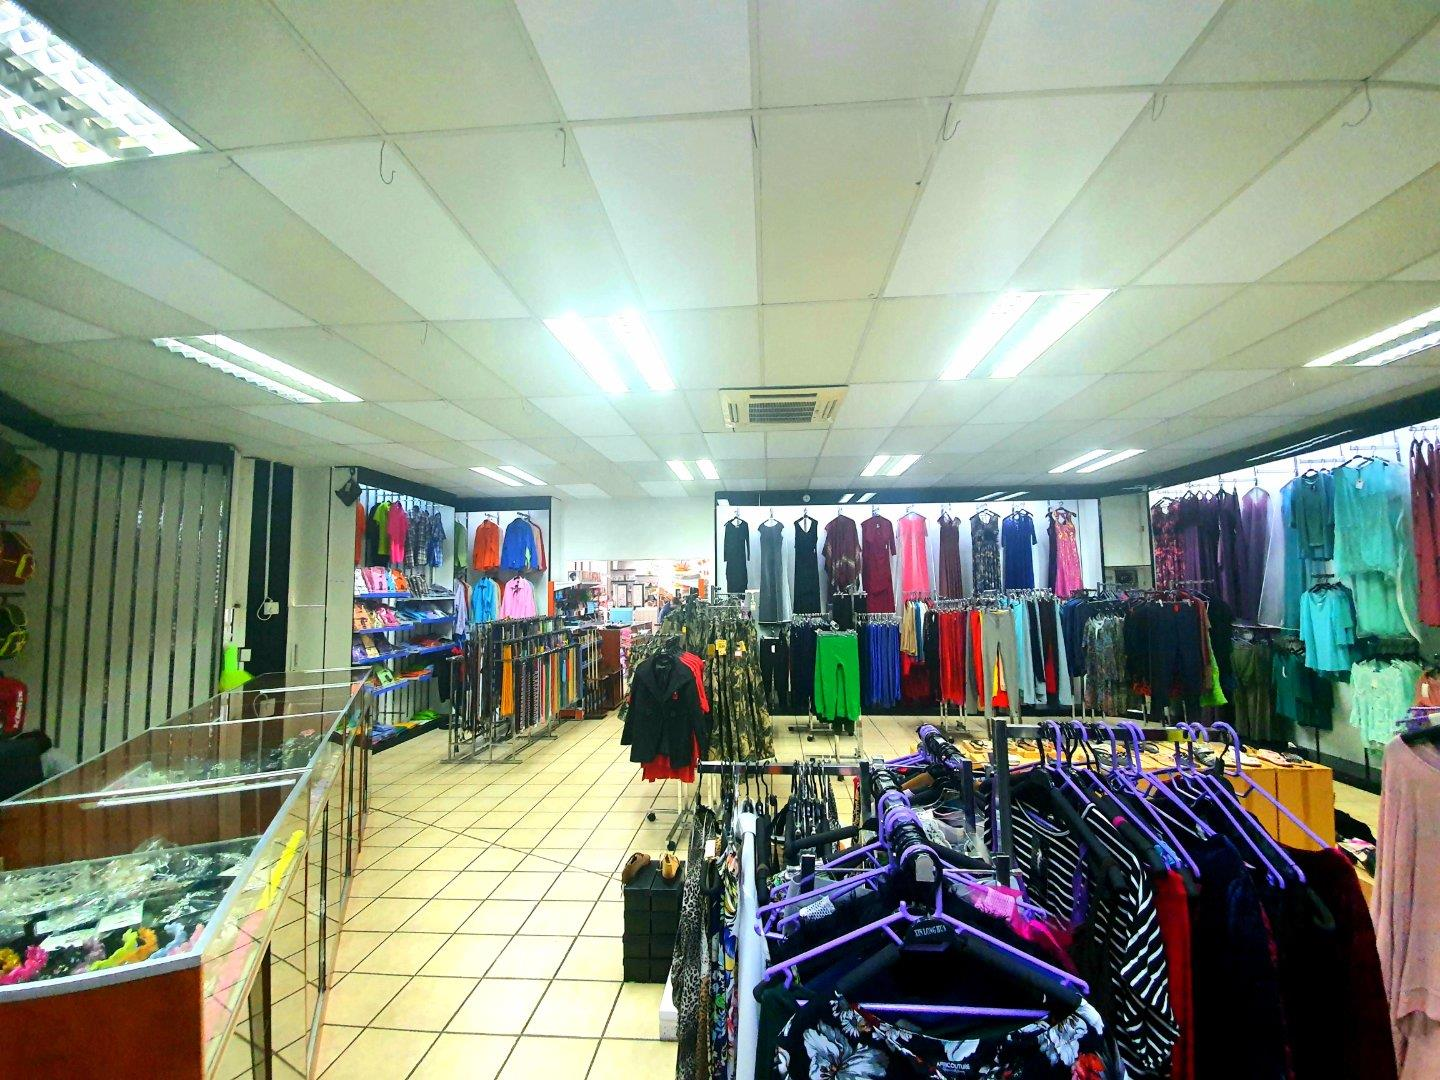 Well Known Retail Business for sale with Inventory RISING SUN